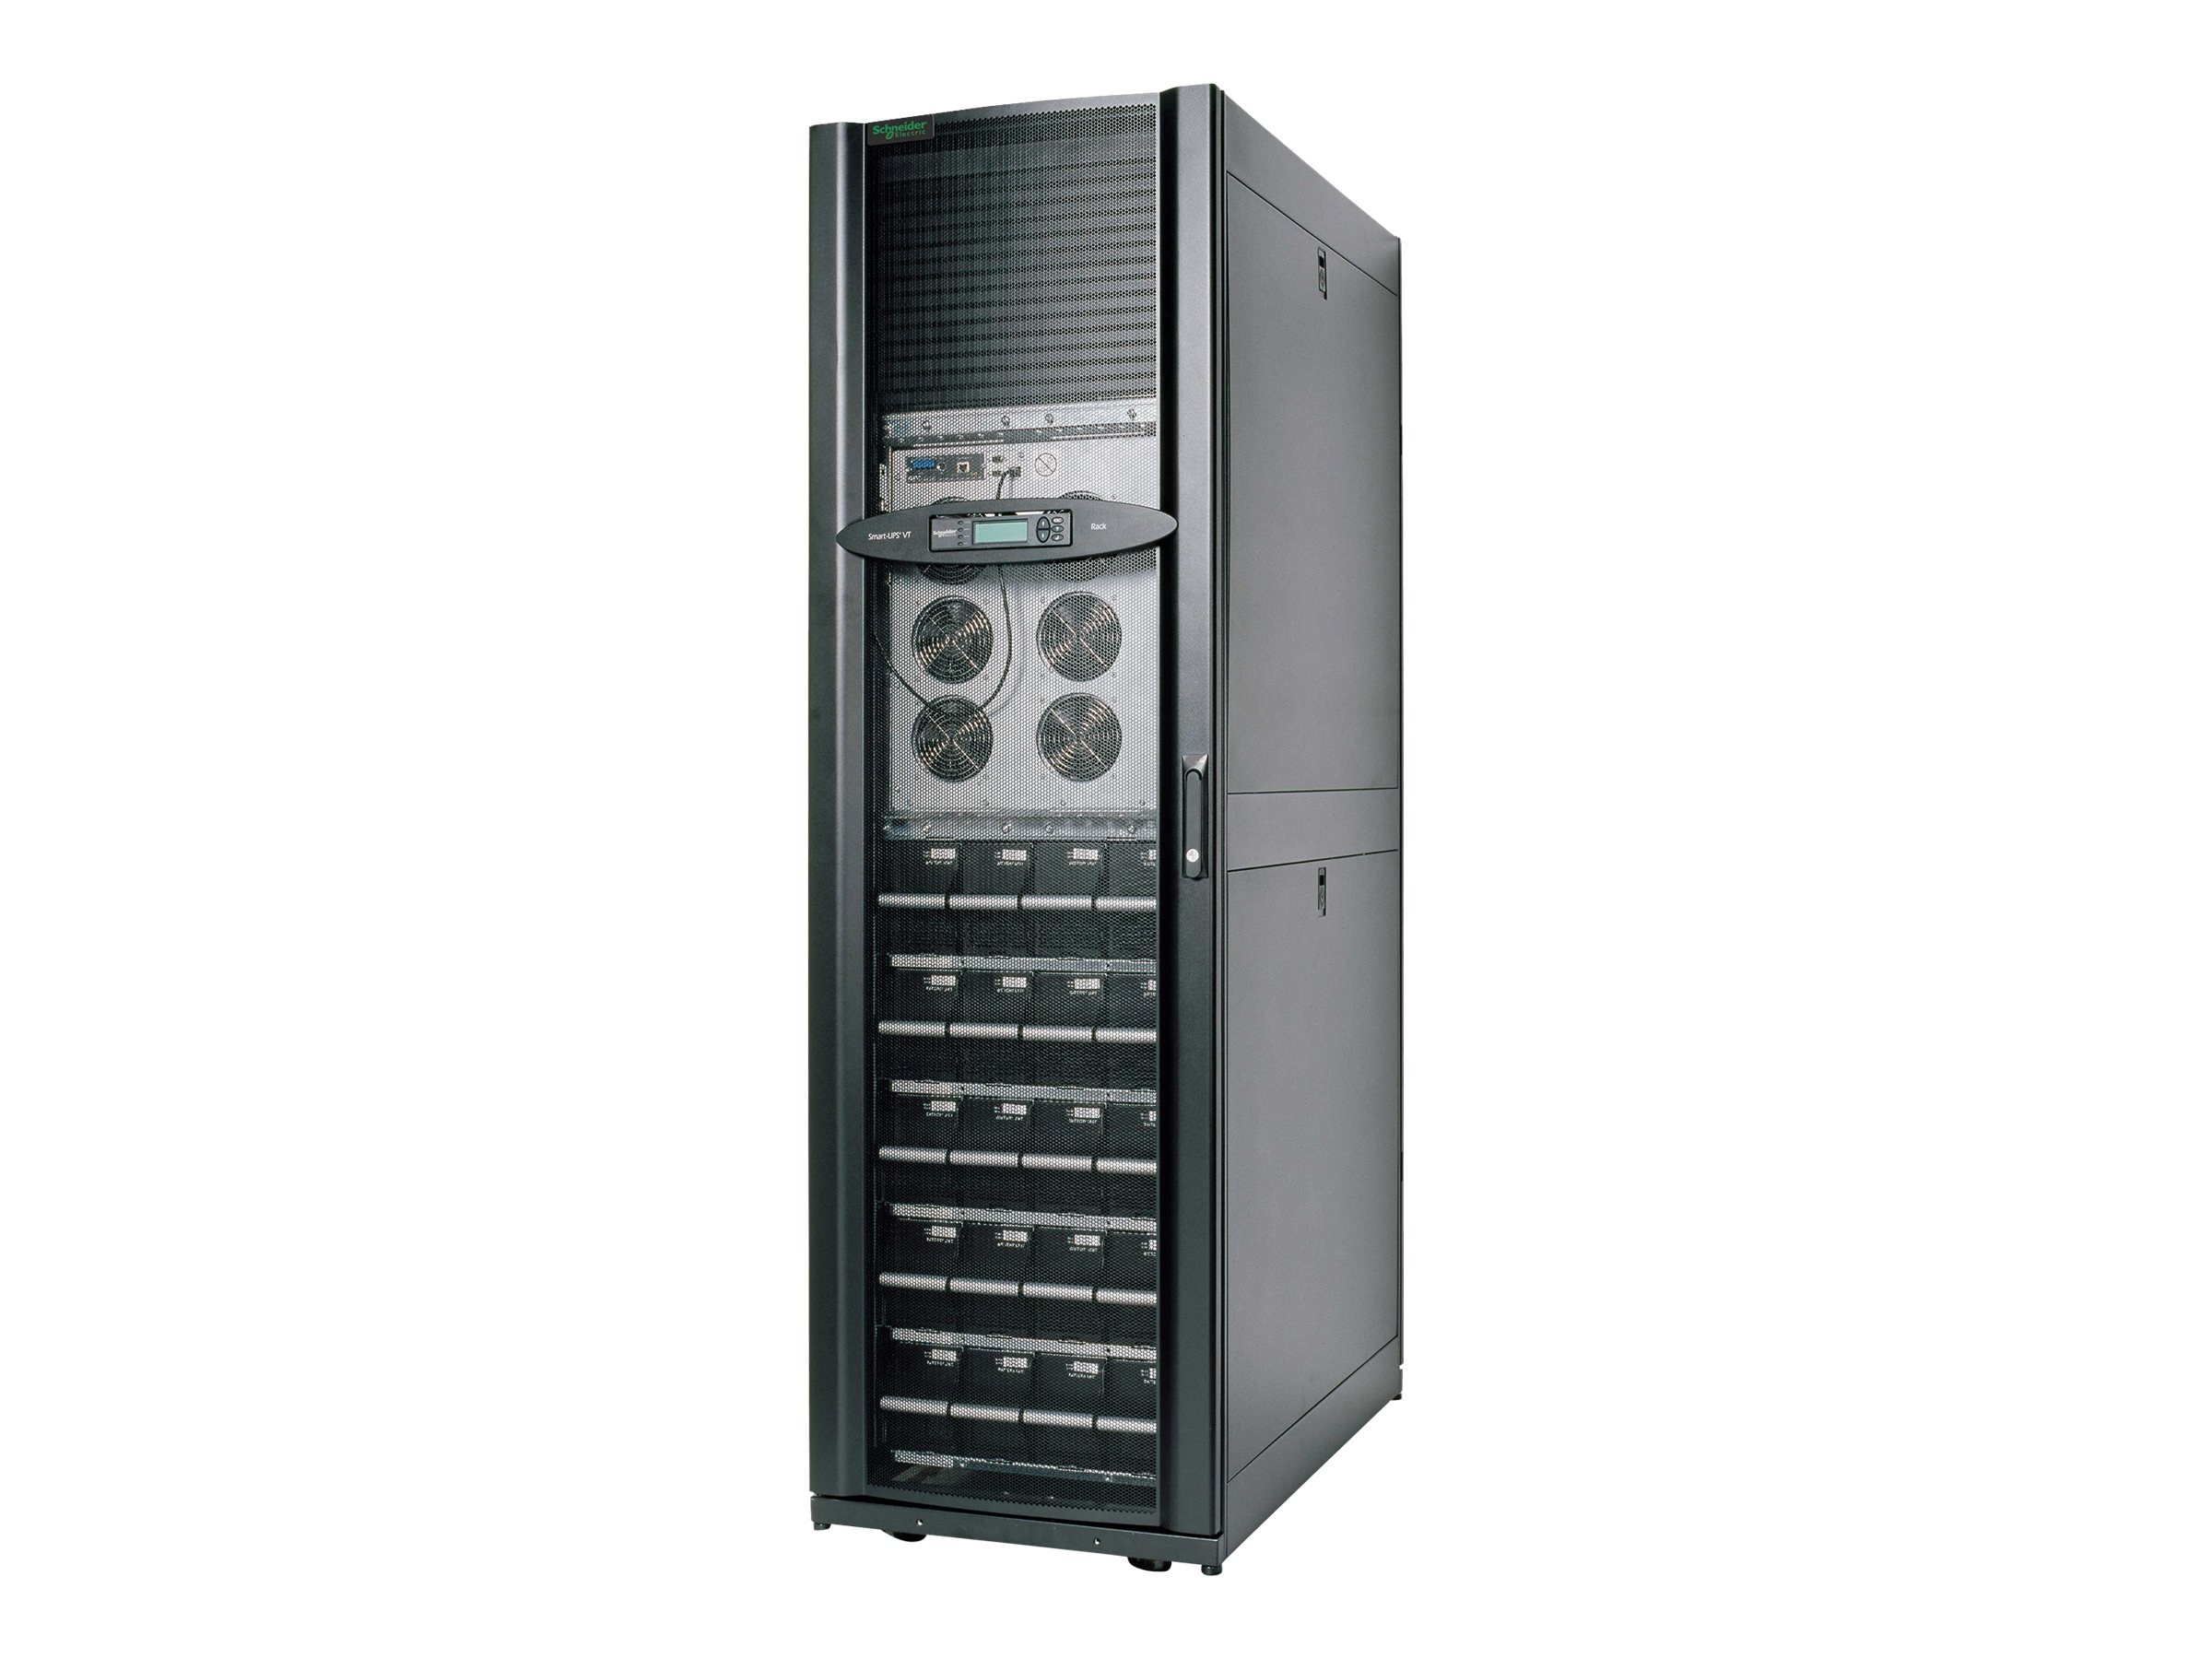 APC Smart-UPS VT 30 kVA 208V Rack with (5) Battery Modules, PDU, Startup Service, SUVTR30KF5B5S, 7830912, Battery Backup/UPS